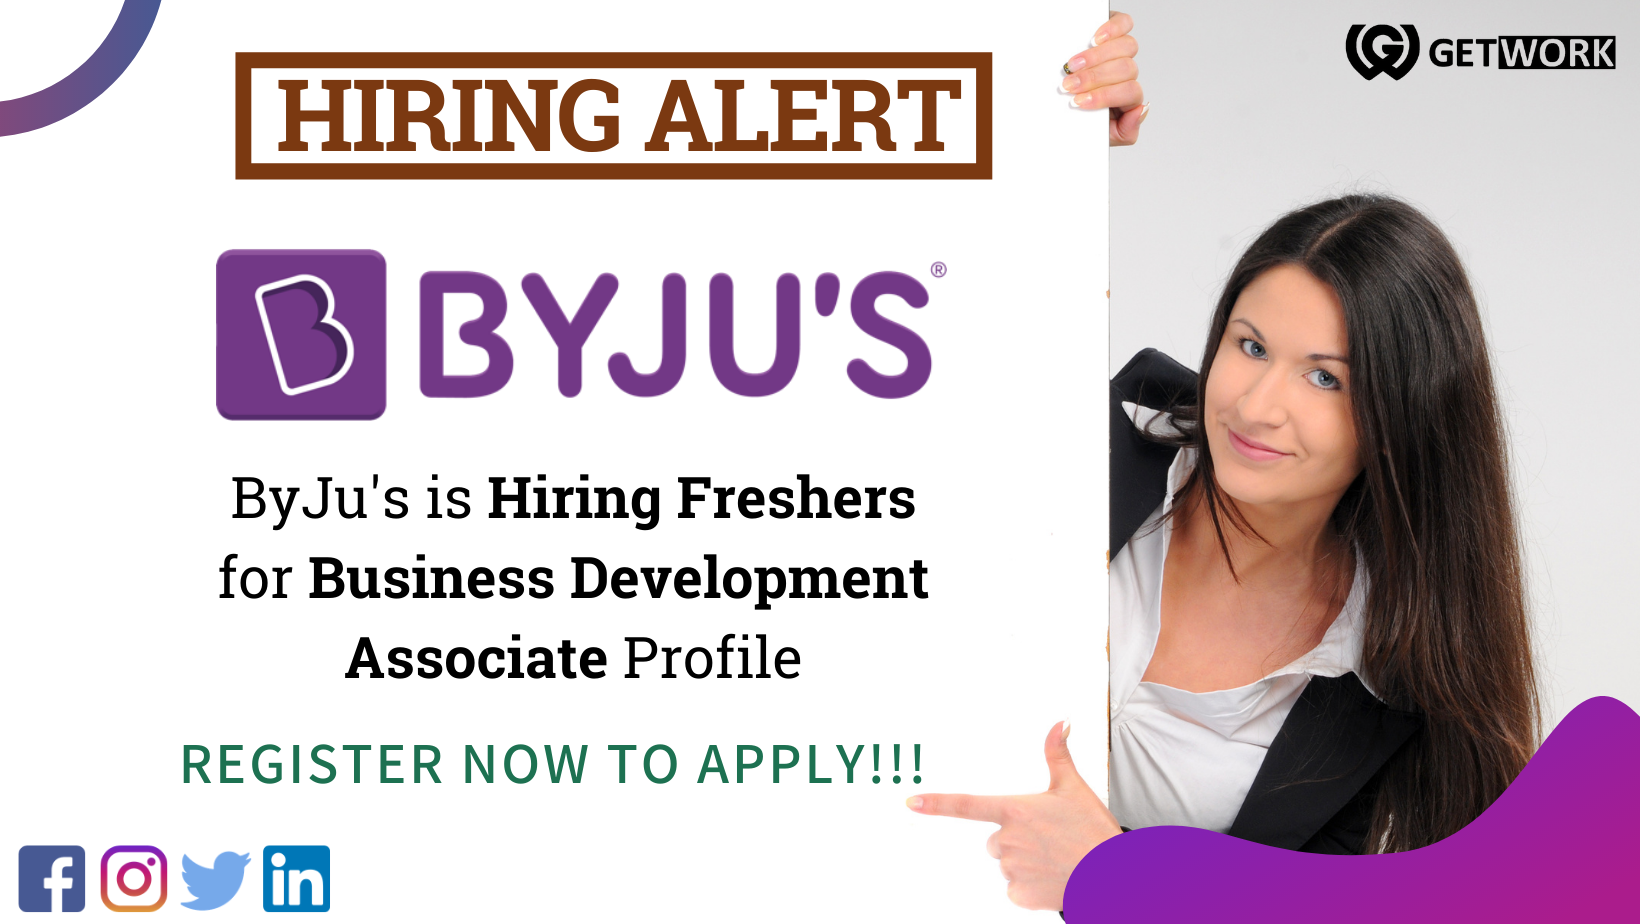 business development associate in byju/ role of business development associate in byju's/ byjus careers for freshers